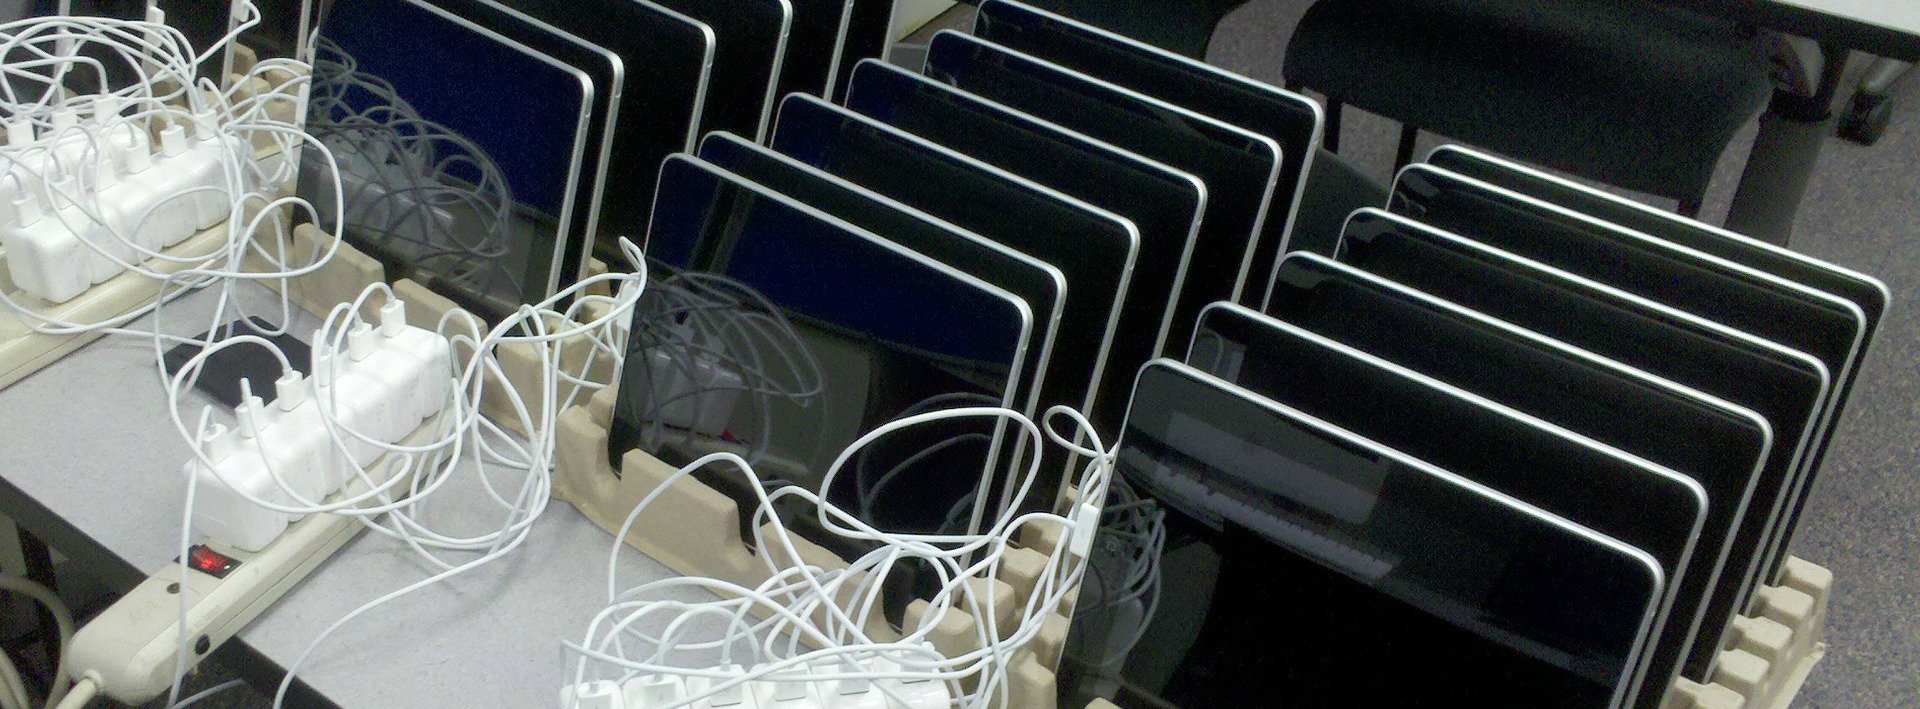 iPad rental the easy way from Precision Events